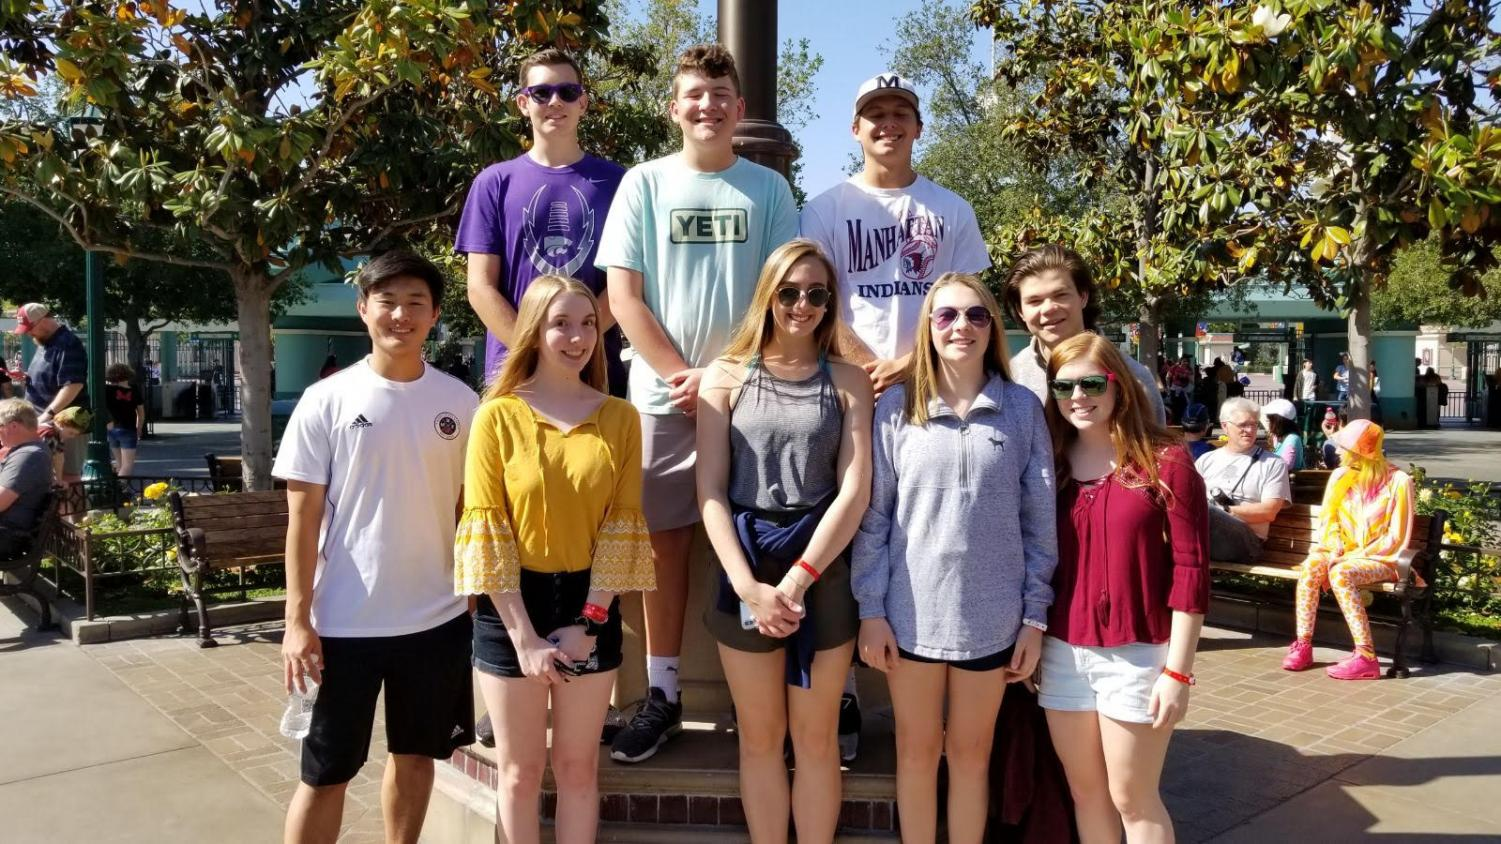 From front to back, sophomore Rayma Last, sophomore Brandy Sullivan, junior Hannah Higgins, sophomore Rhys Phipps, junior Will Bannister and junior Alison Payne, junior Casey Gritton, junior Collin Devan and junior Tyler Higgins pose for a photo during their BPA trip in California.